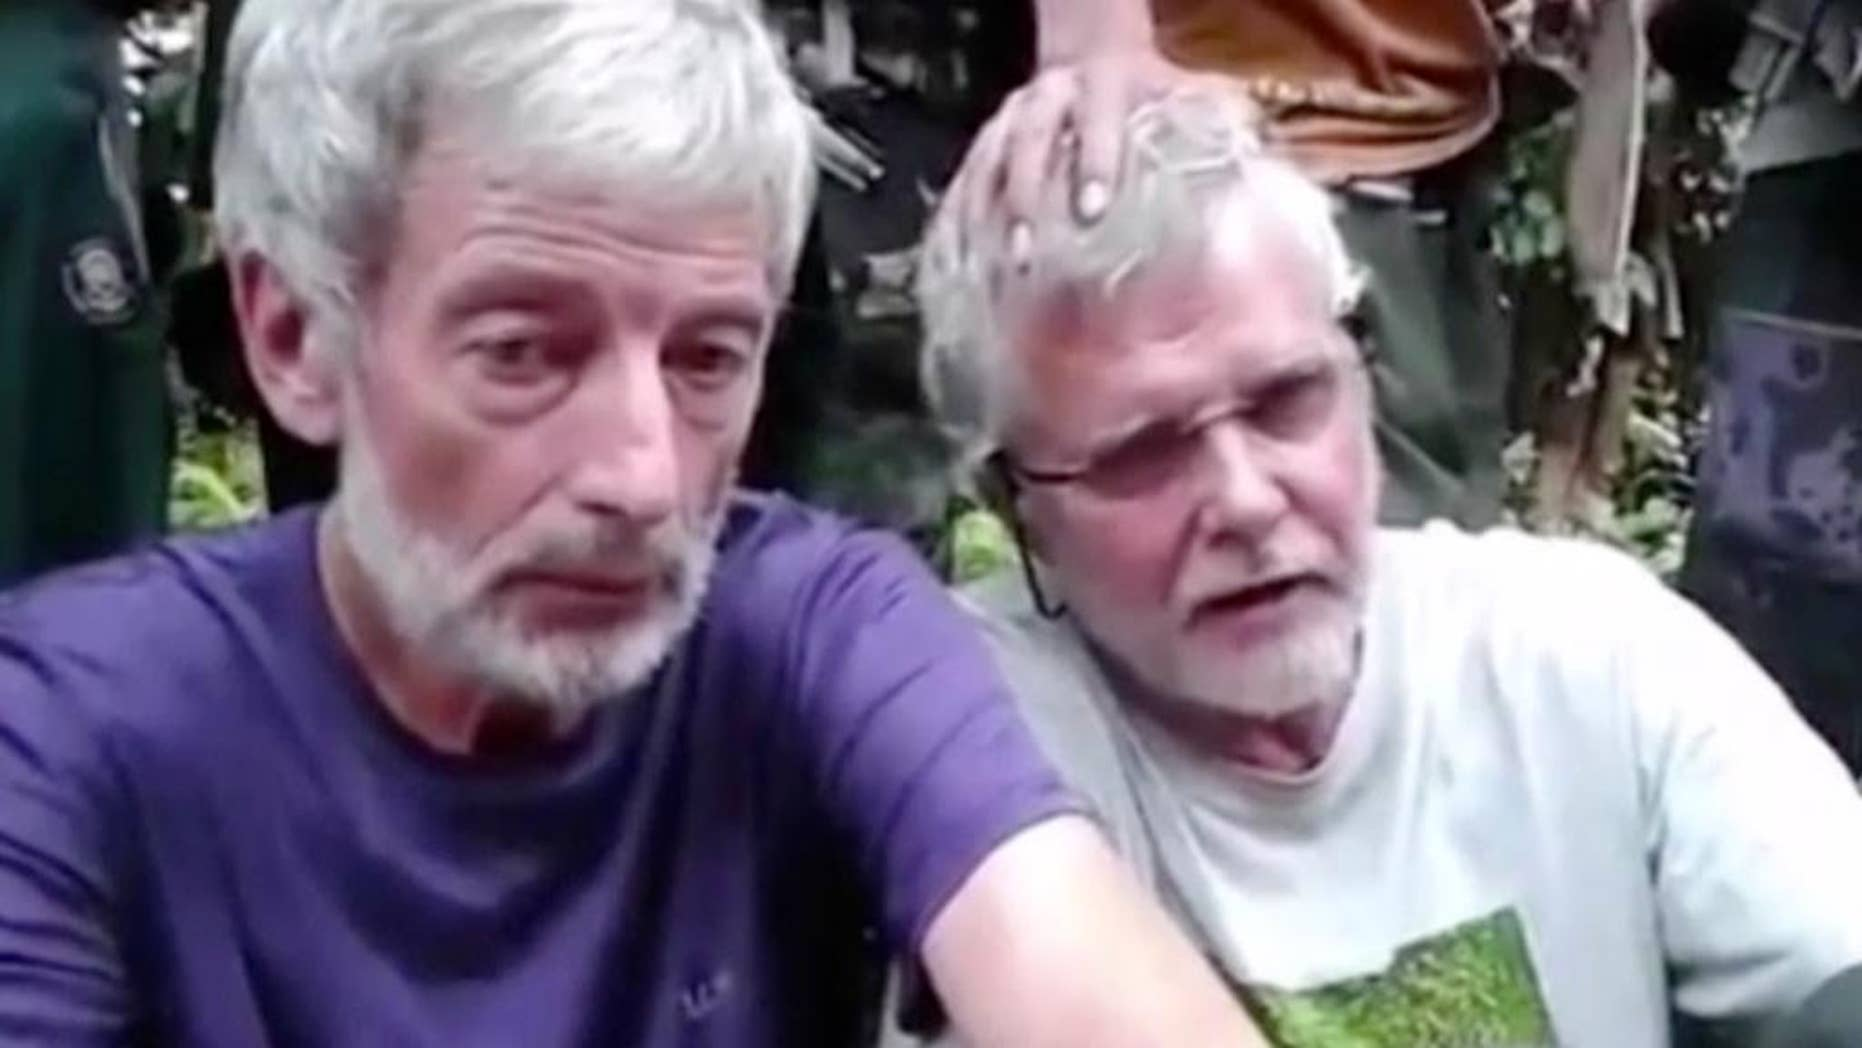 This image made from undated militant video, shows Canadians John Ridsdel, right, and Robert Hall. Canada's Prime Minister Justin Trudeau confirmed that the decapitated head of a Caucasian male recovered Monday, April 25, 2016, in the southern Philippines belongs to Ridsdel, who was taken hostage by Abu Sayyaf militants in September 2015. (Militant Video via AP Video) NO SALES, MANDATORY CREDIT